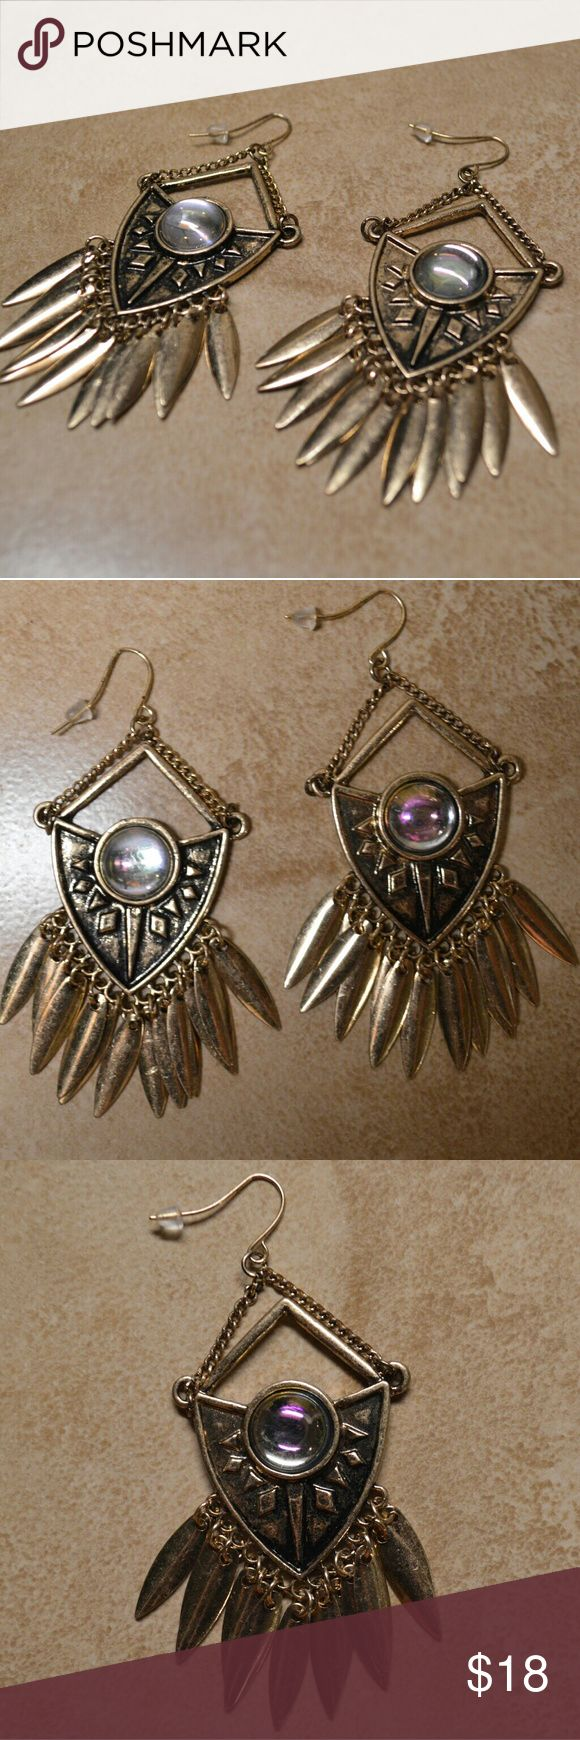 Stunning Brand New Gold Native Feather Earrings These beauties are a great find! Shiny gold earrings with dangly feathers at the bottom of each. Remind me of a native American design or dreamcatcher. Abalone shell stone (synthetic?) accents. Truly gorgeous!  These are brand new and perfect! They do have a weathered/distressed finish.     Tags feathers feather boho bohemian hippy earrings dangle dangly native American Indian web gold classy girly hook earrings topshop Navajo Aztec Jewelry…